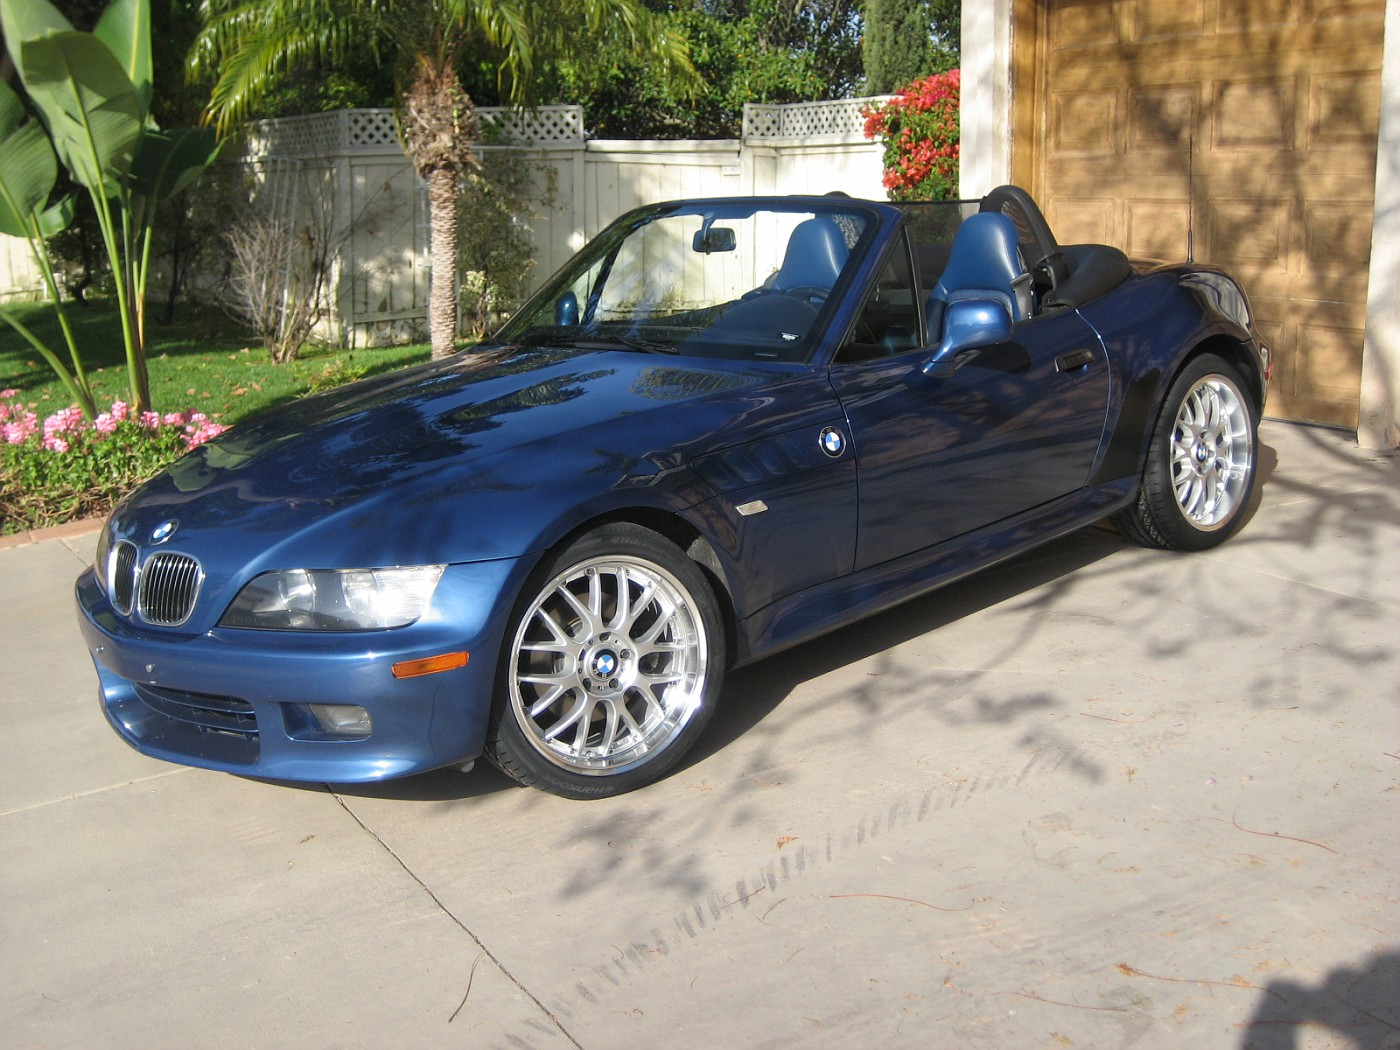 Z3 Mz3 Coupe Wheel Fitment Database Post A Pic Along With